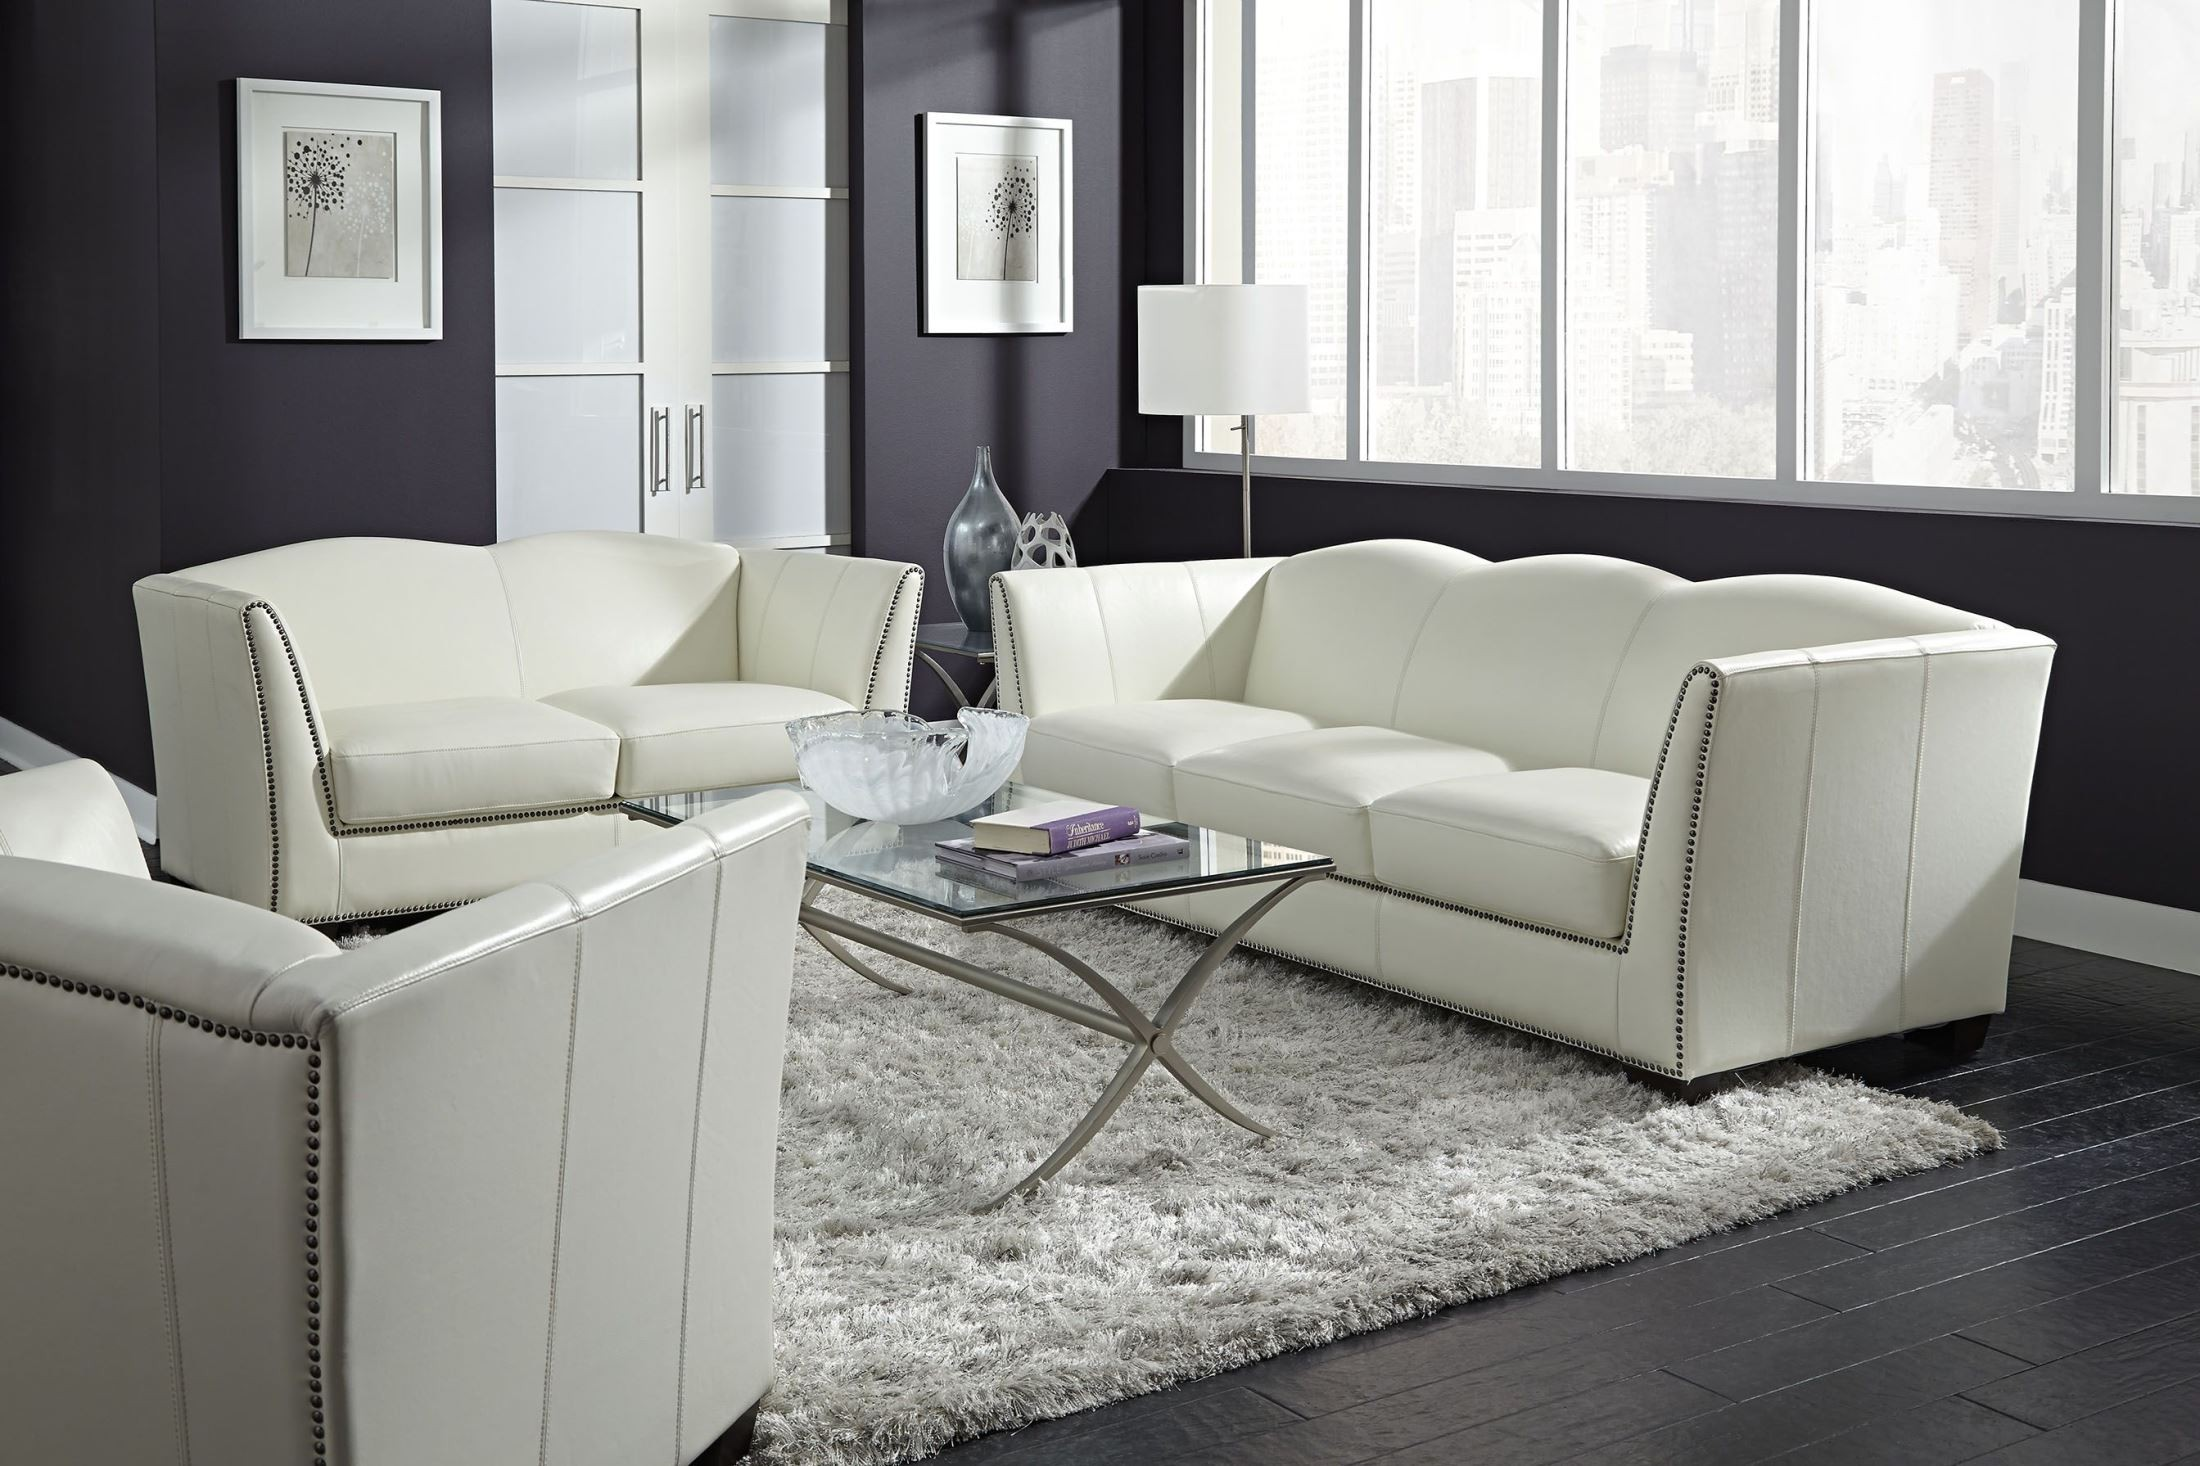 Living Room Furniture: Manlyn White Leather Living Room Set From Lazzaro (WH-1327